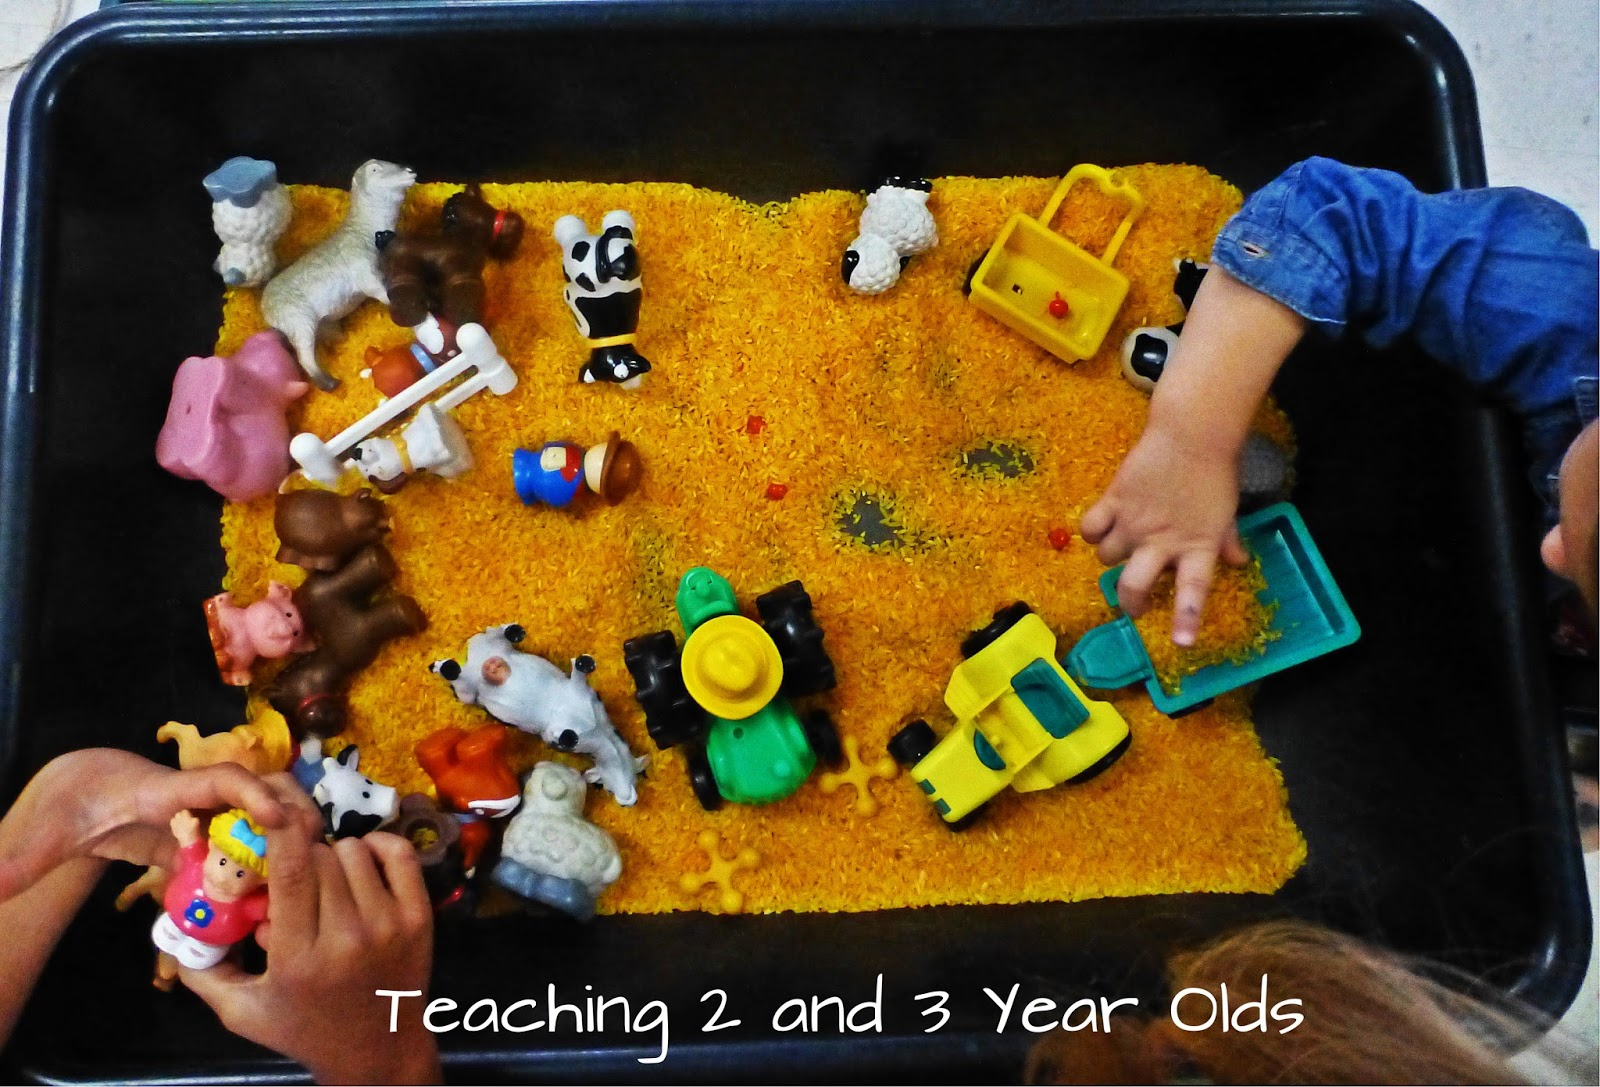 Teaching 2 And 3 Year Olds Preschool Ideas For The Sensory Table